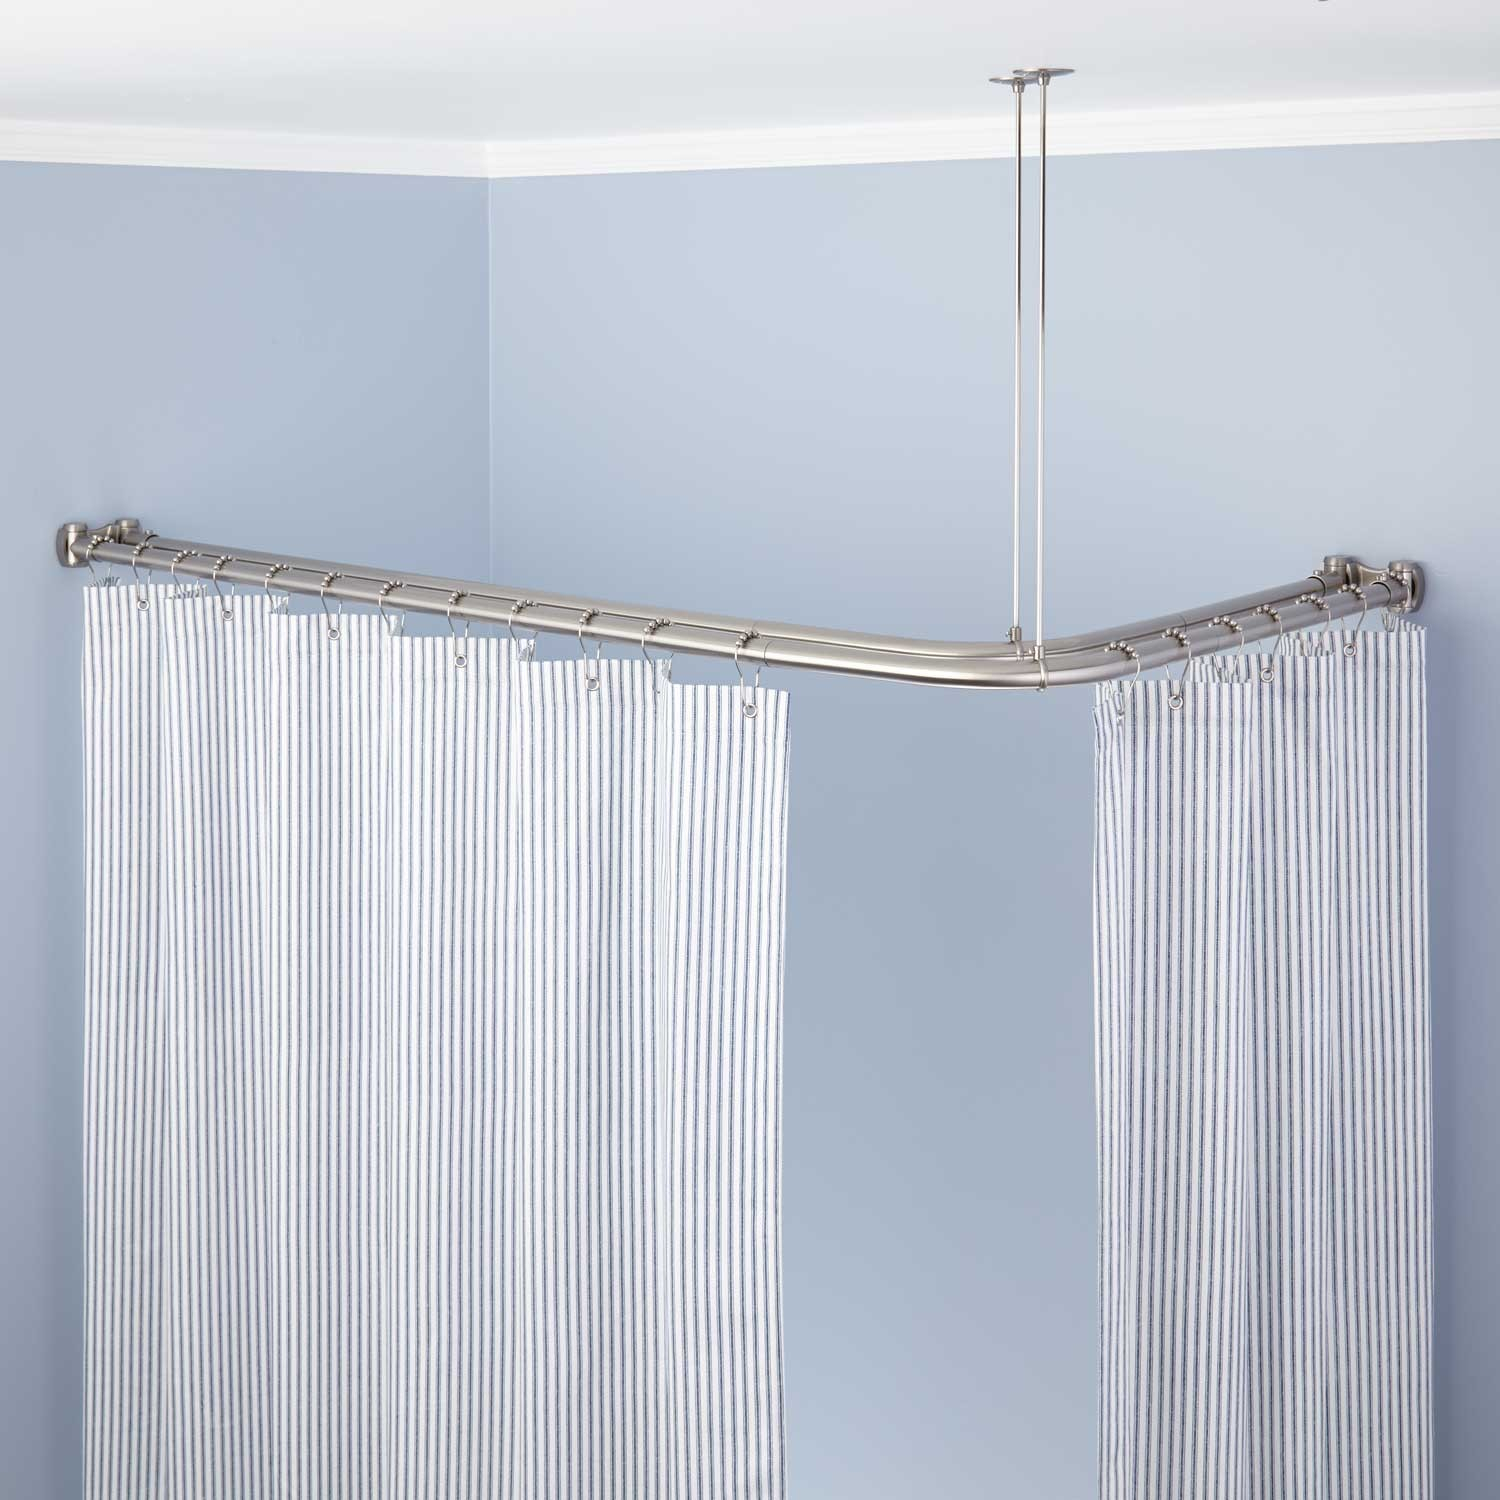 Curved Shower Curtain Rods For Clawfoot Tubs • Shower Curtains Ideas